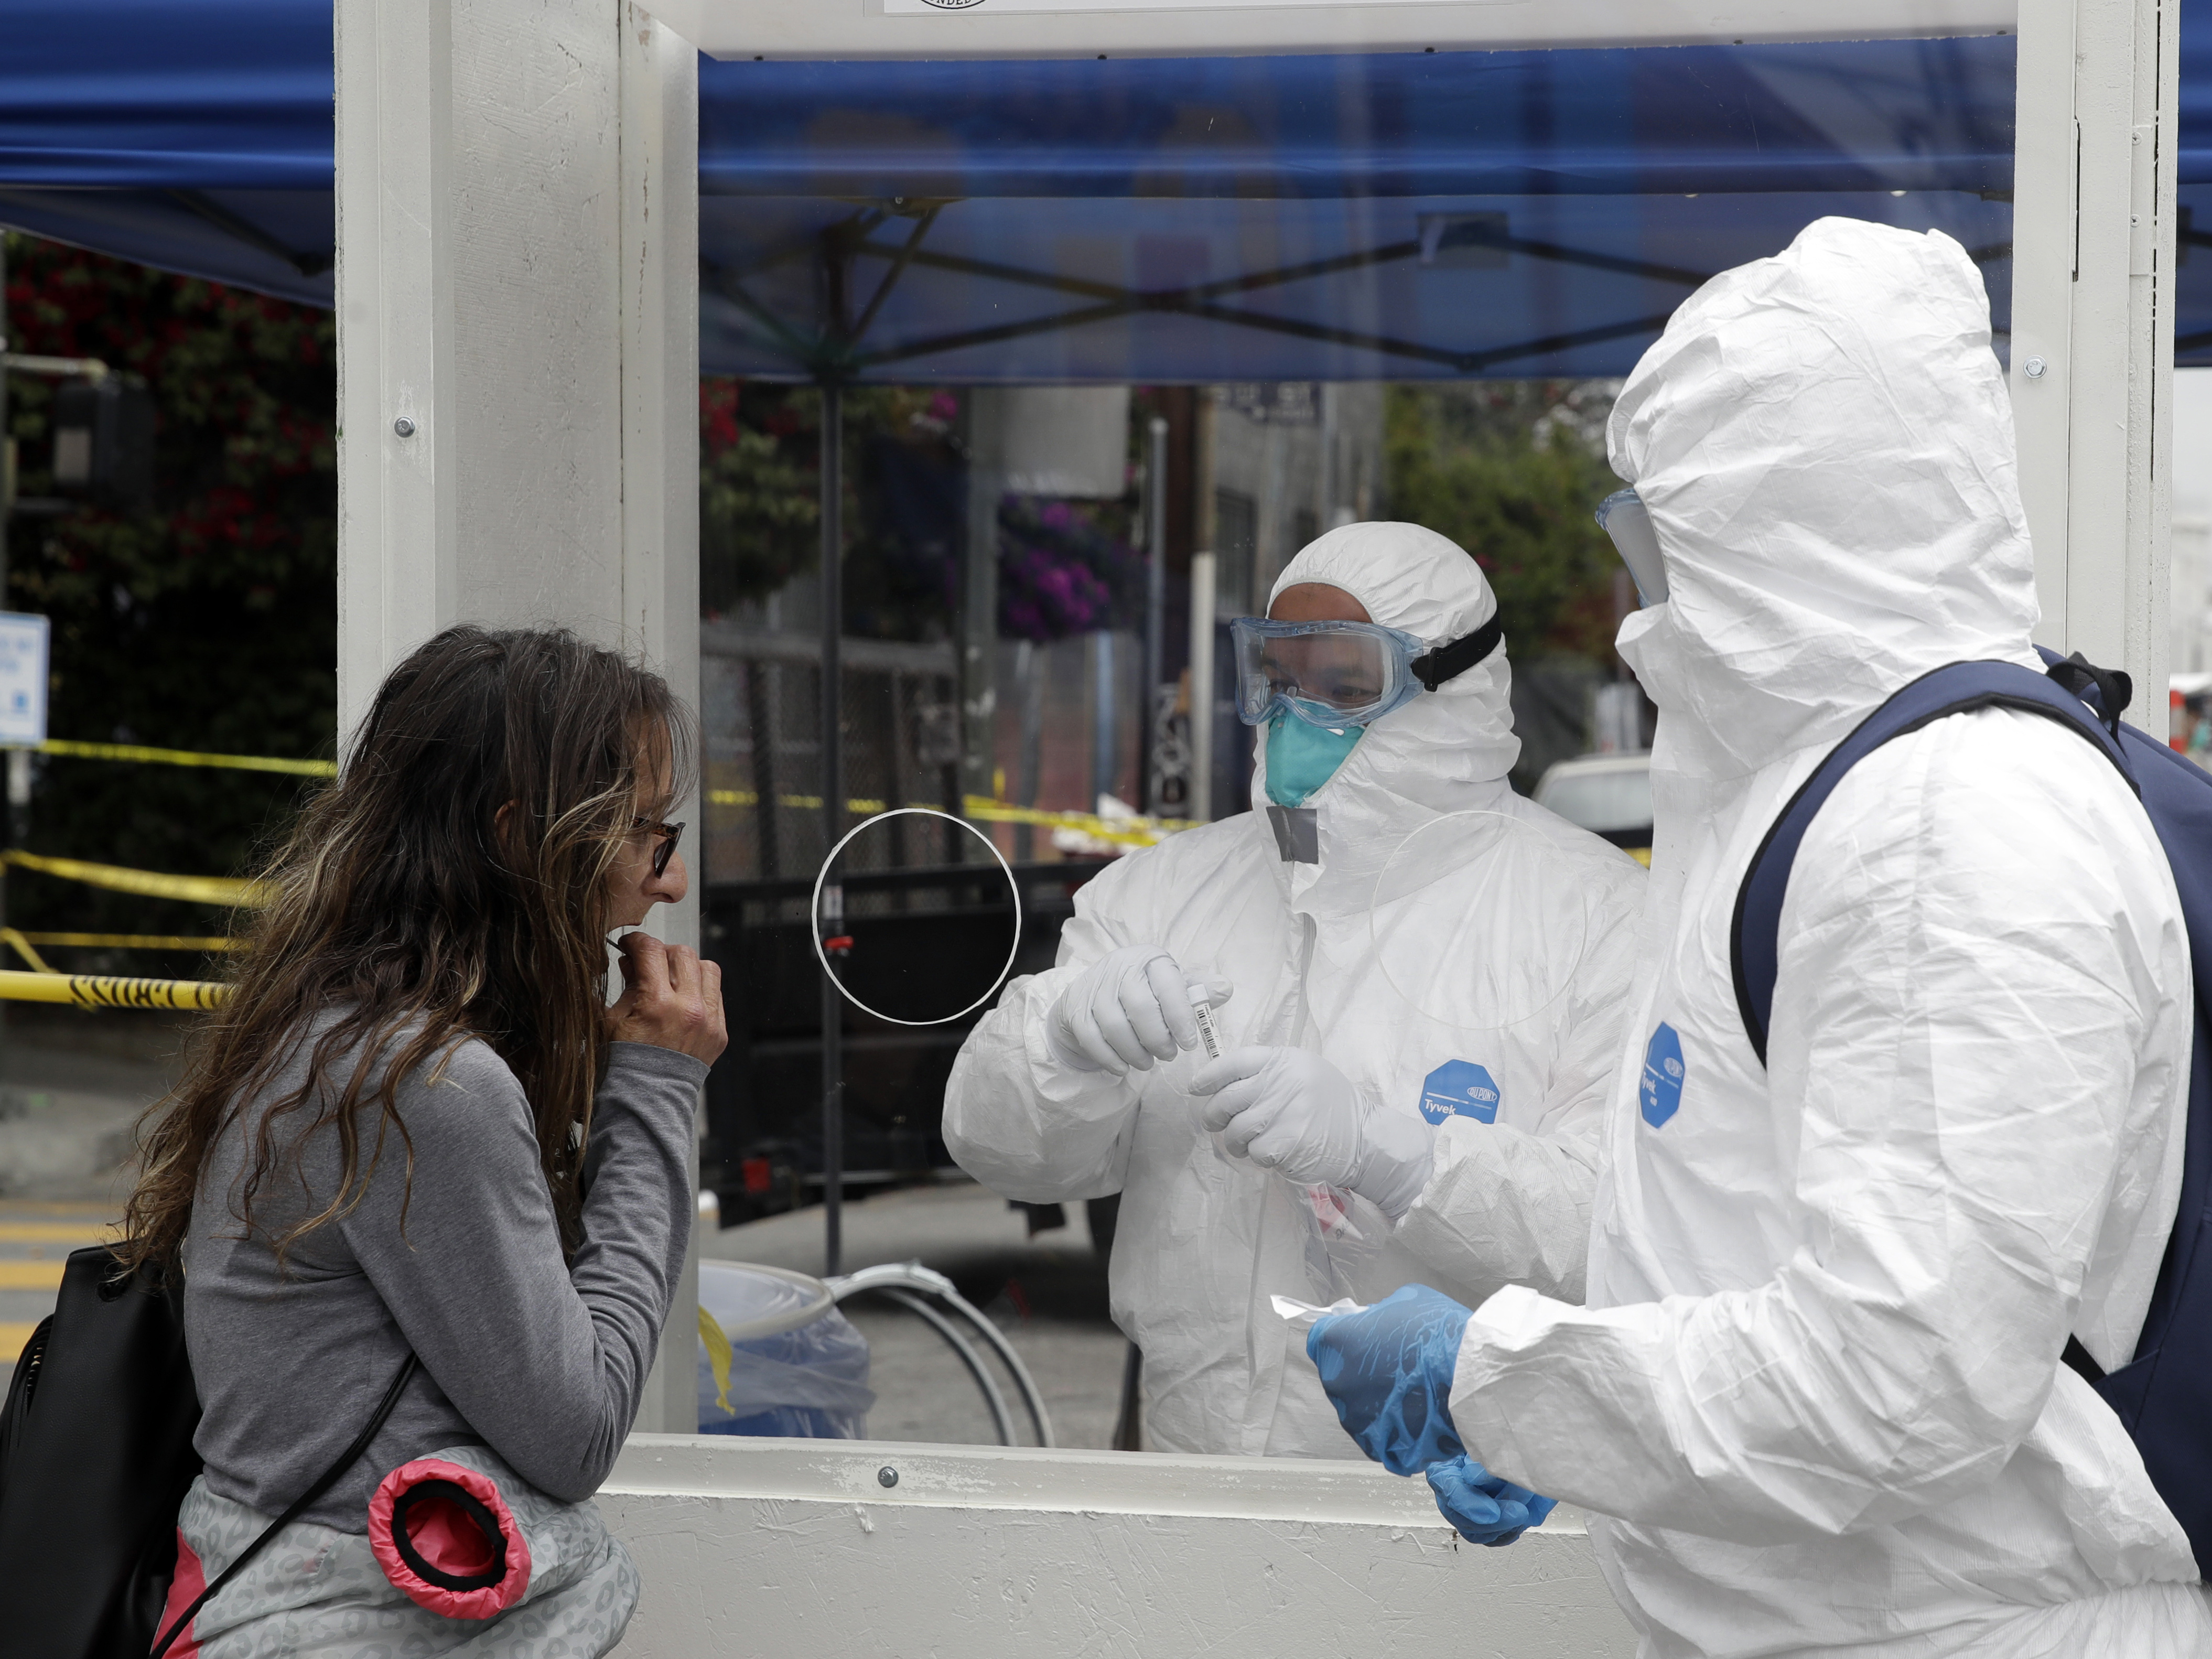 Los Angeles City And County Offer Free Coronavirus Testing To All Residents Coronavirus Updates Npr